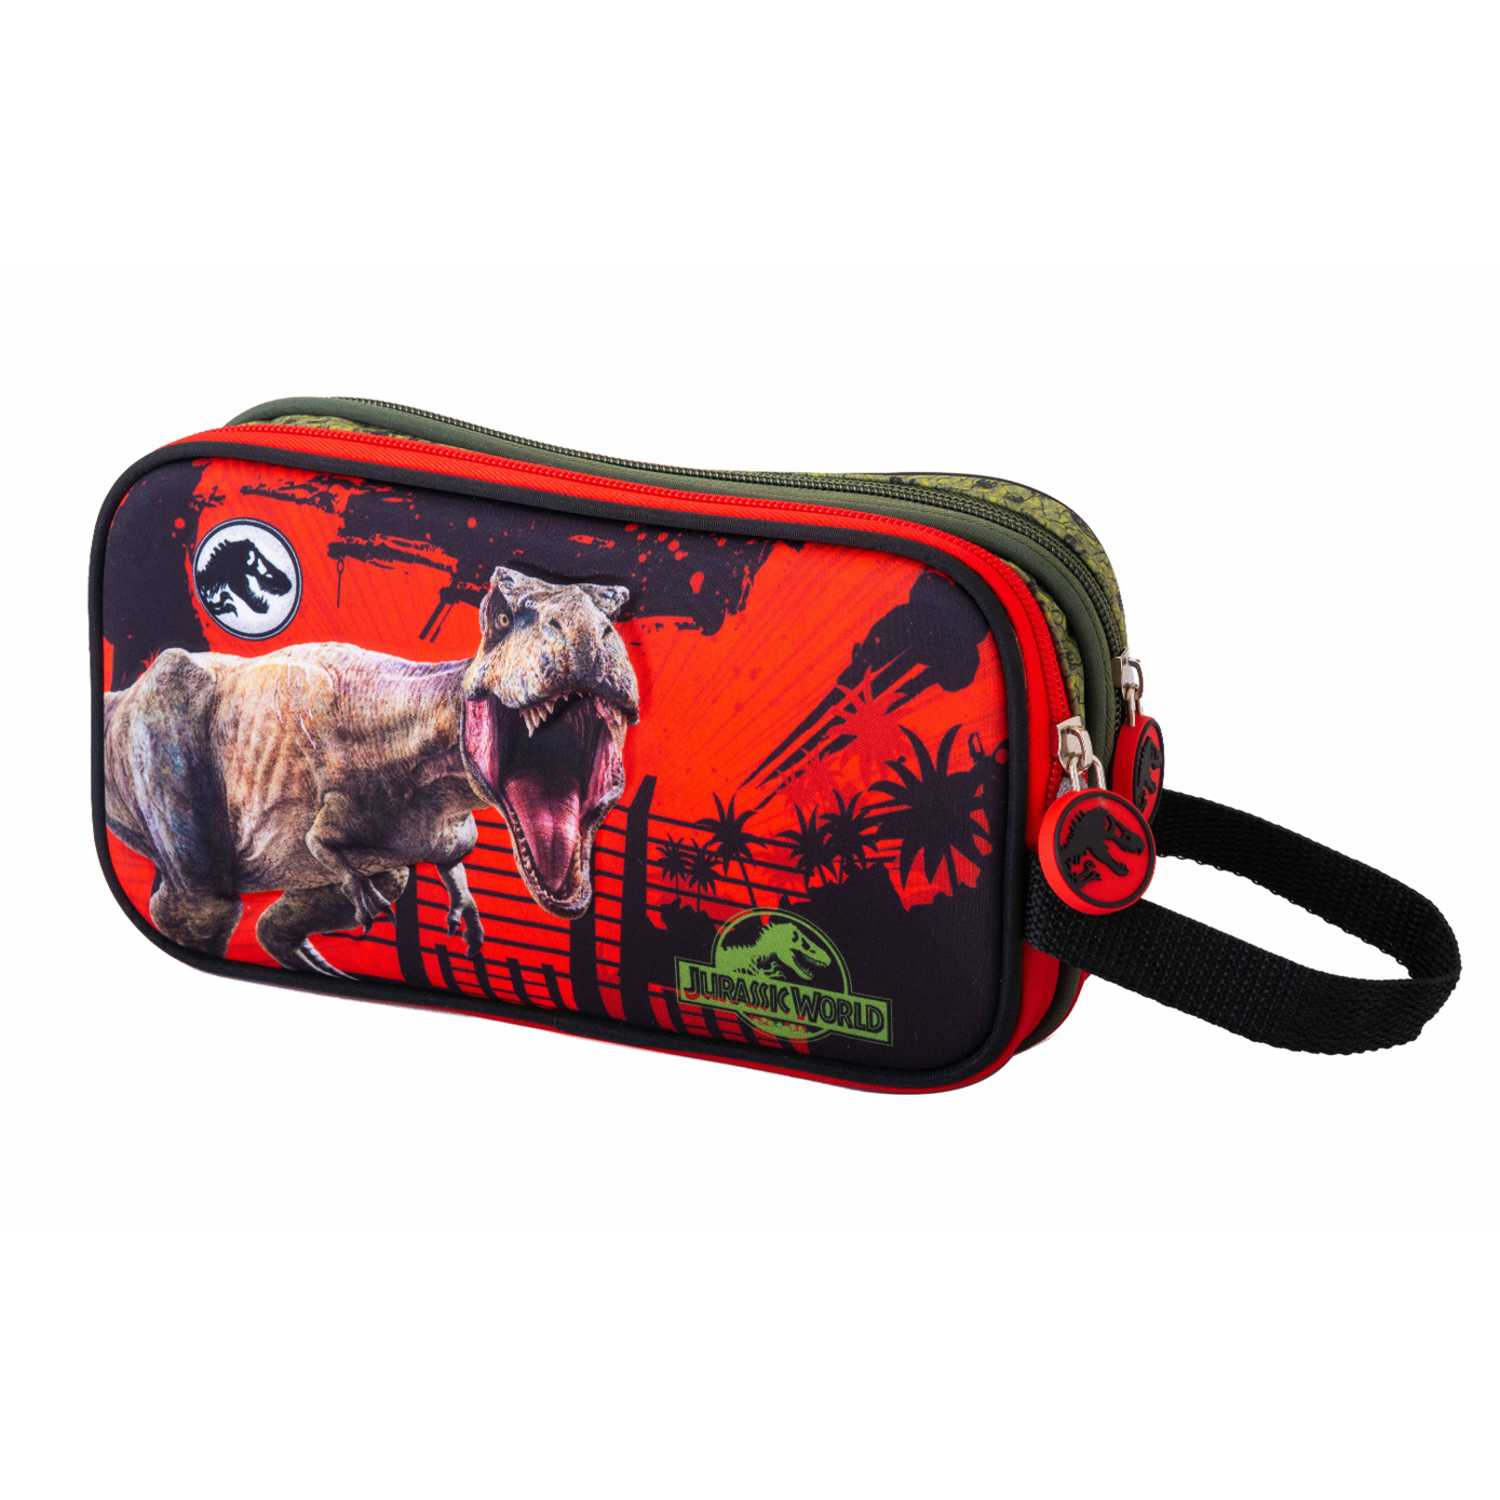 Cartuchera de Niño Scool Rojo 9 scool jurassic cart eva 3d d/cierre_b